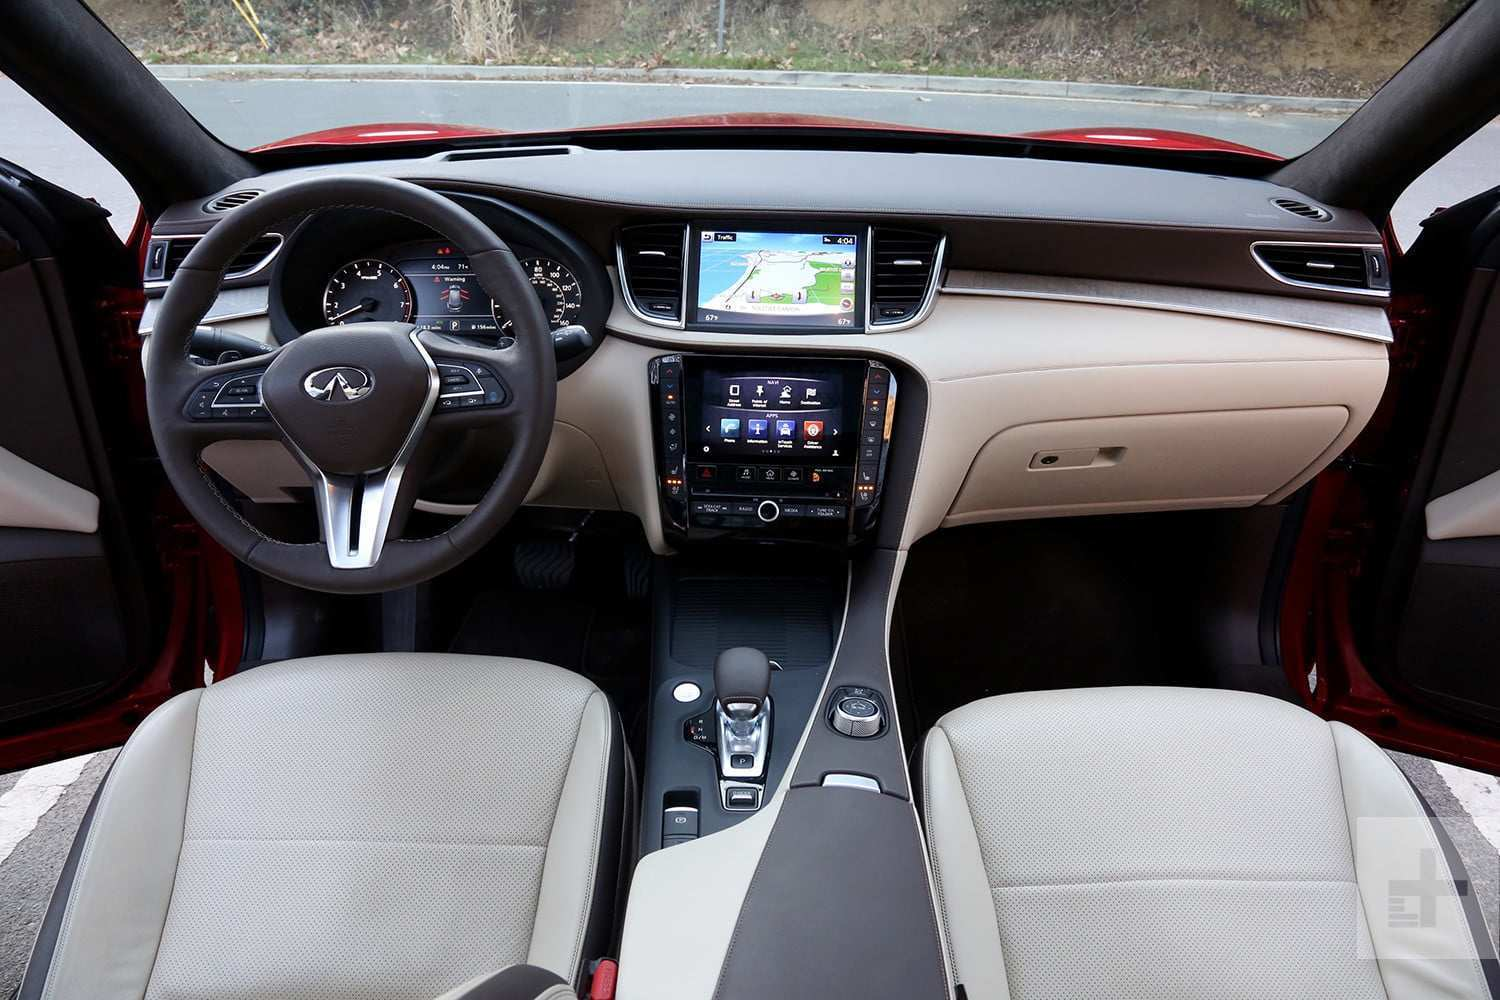 64 The 2019 Infiniti Qx50 Luxe Interior First Drive